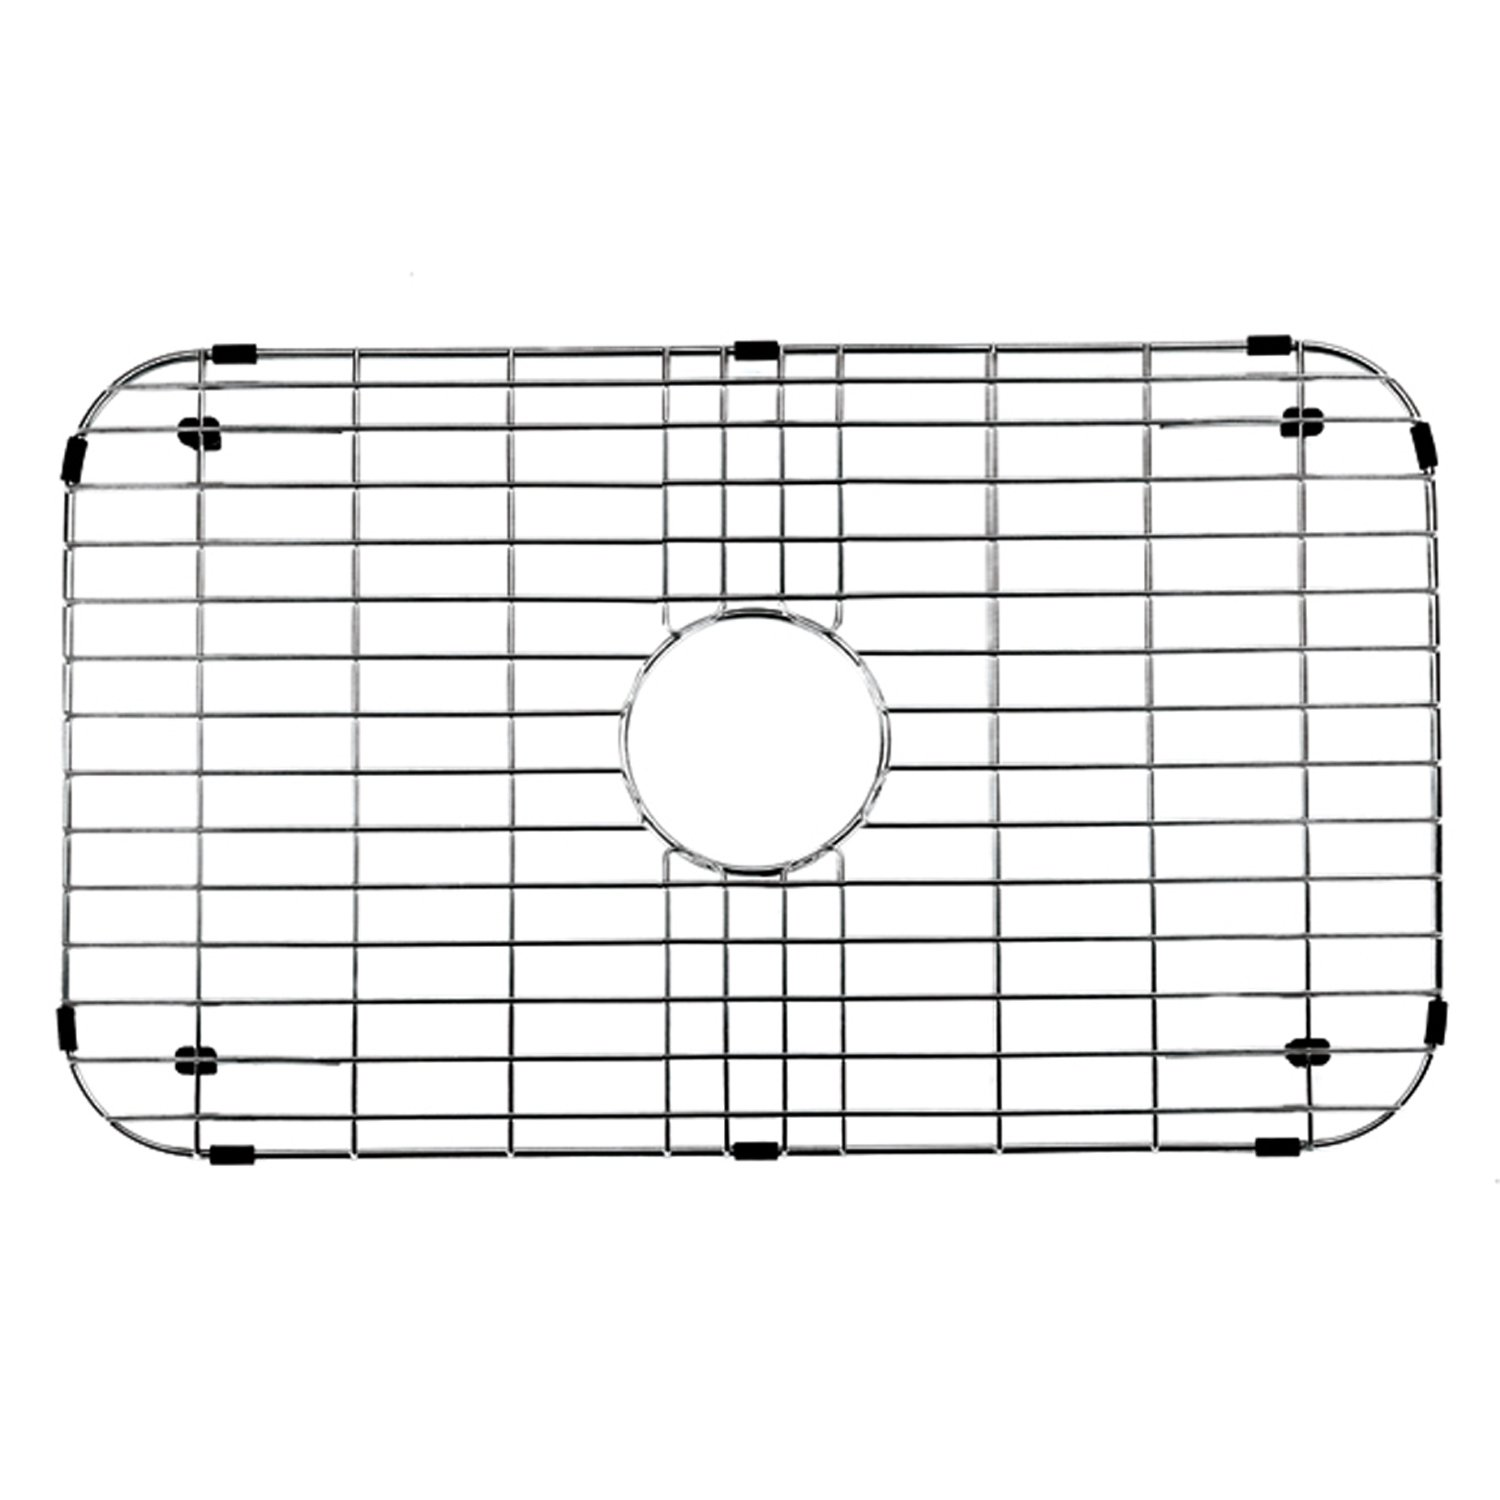 Kitchen Sink Installation Parts Besto Blog American Standard 4005f List And Diagram Ereplacementpartscom Vigo Stainless Steel Bottom Grid 26 In X 14 375